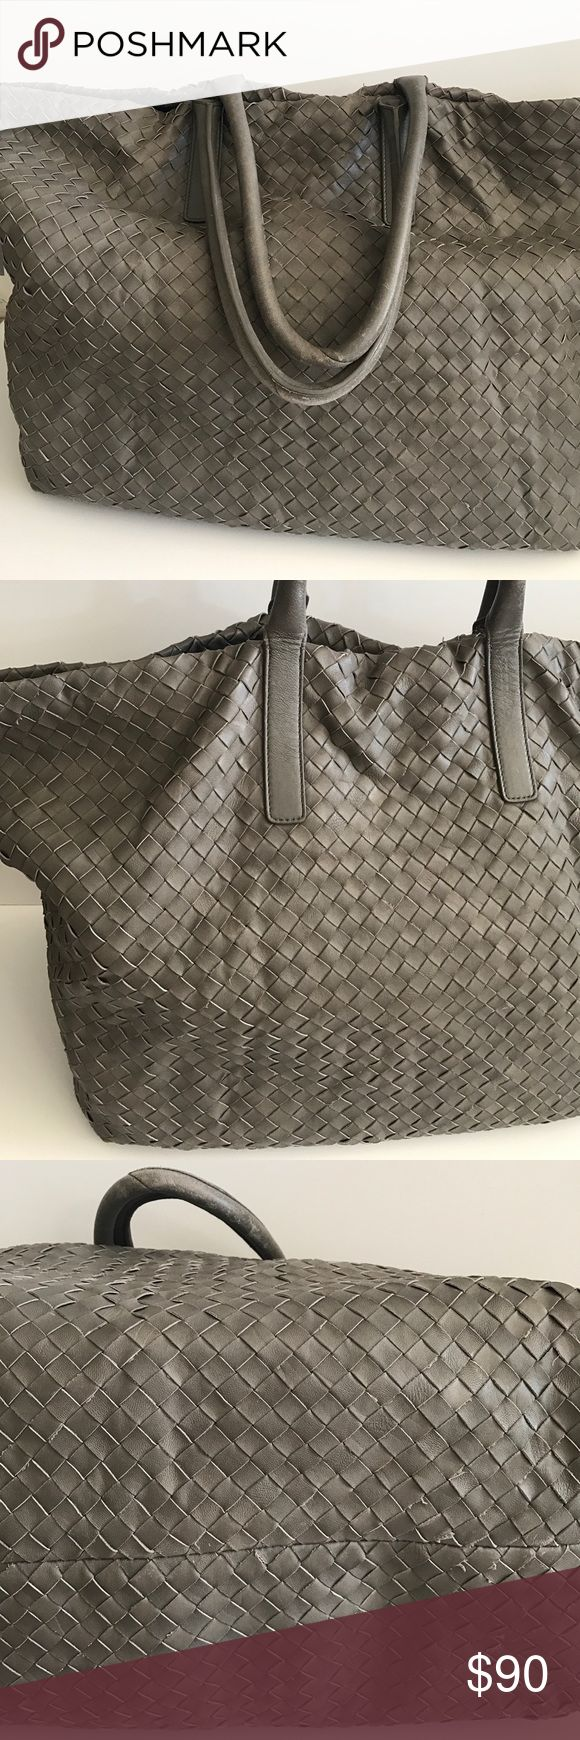 "💥SALE Club Monaco Lamb Leather Extra Large Bag Brand new with tags. Extra Large Tote, Color Grey. Straps have wear texture feel , also has minor scratch see pic#6, Measurements: 28""x17"", Straps 23"". Original price $399.00 Club Monaco Bags Totes"